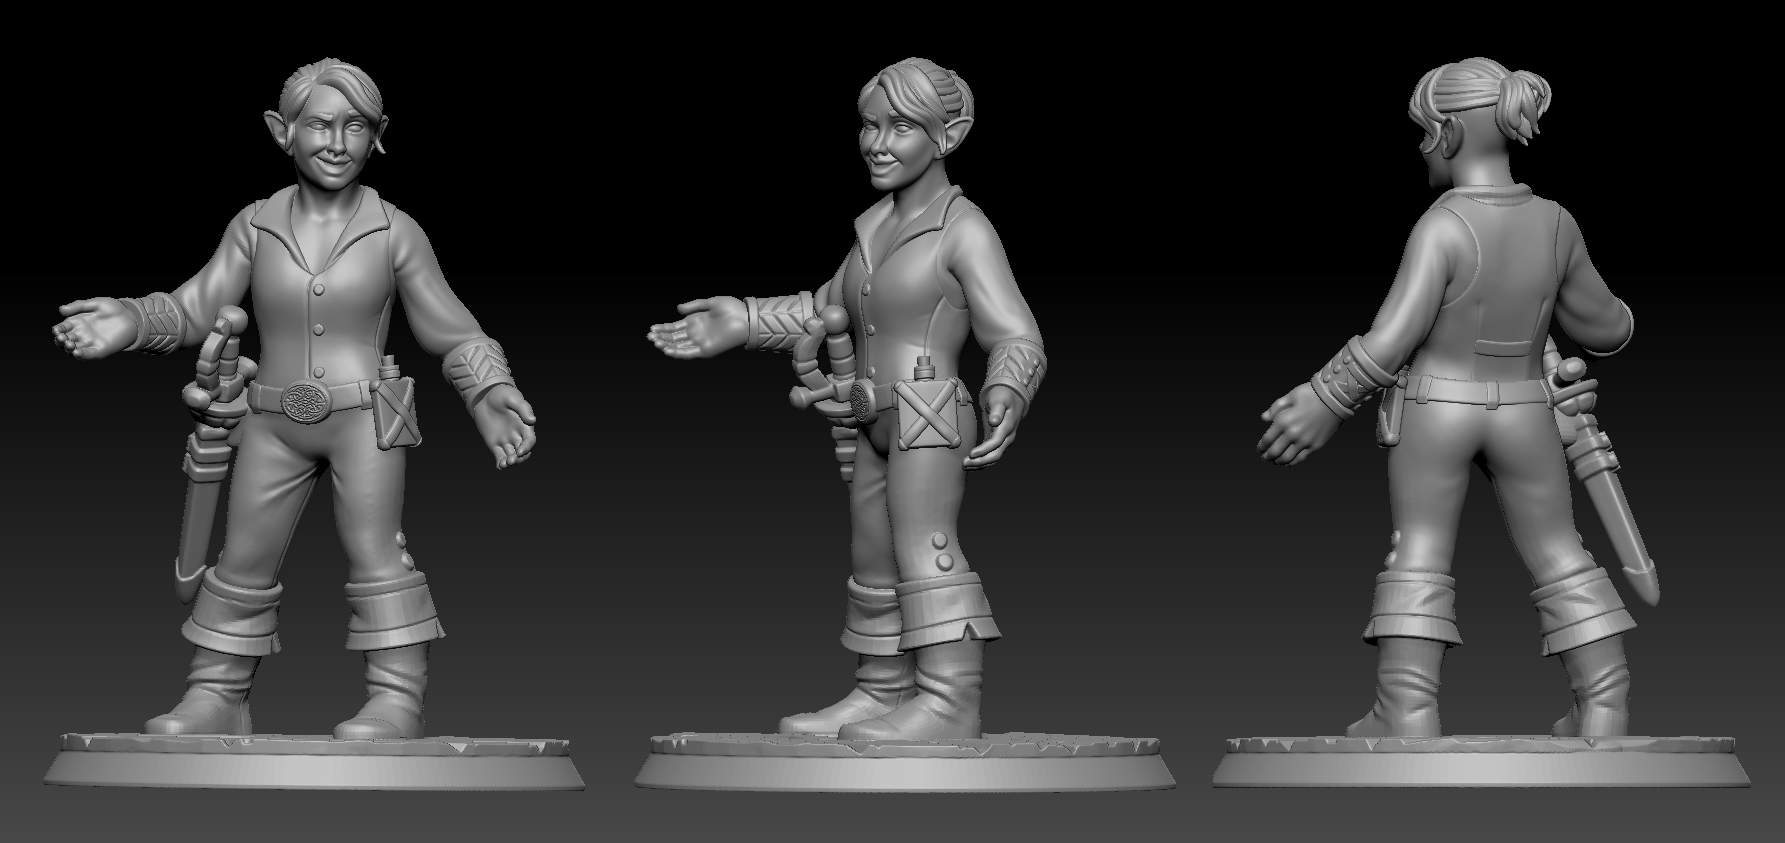 Custom asset using HeroForge.com STL file as a base.